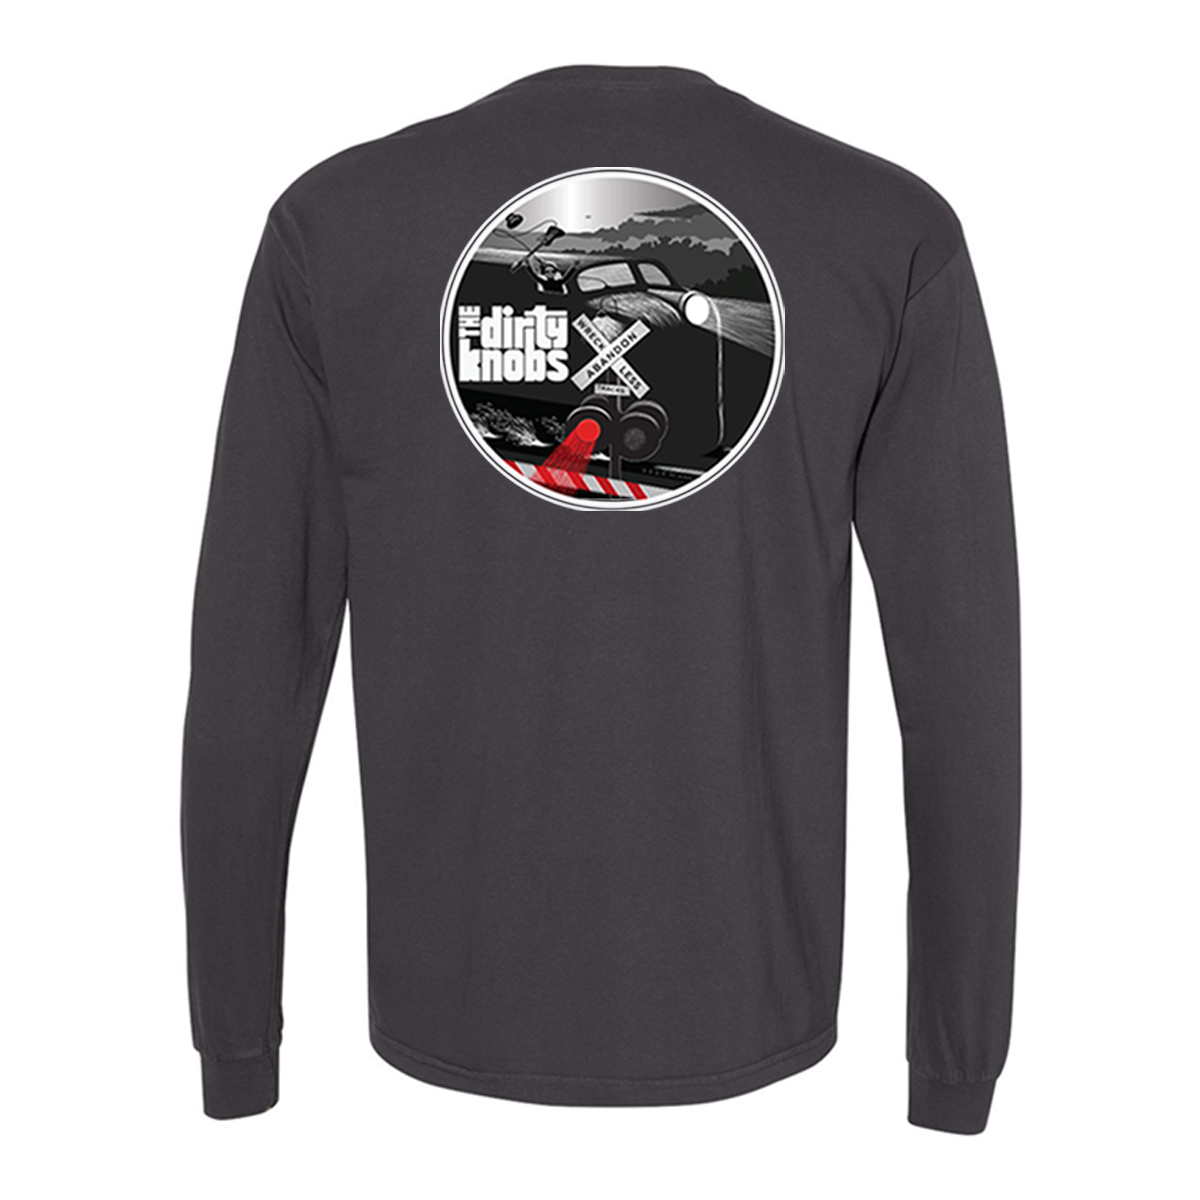 Wreckless Abandon Longsleeve Tee